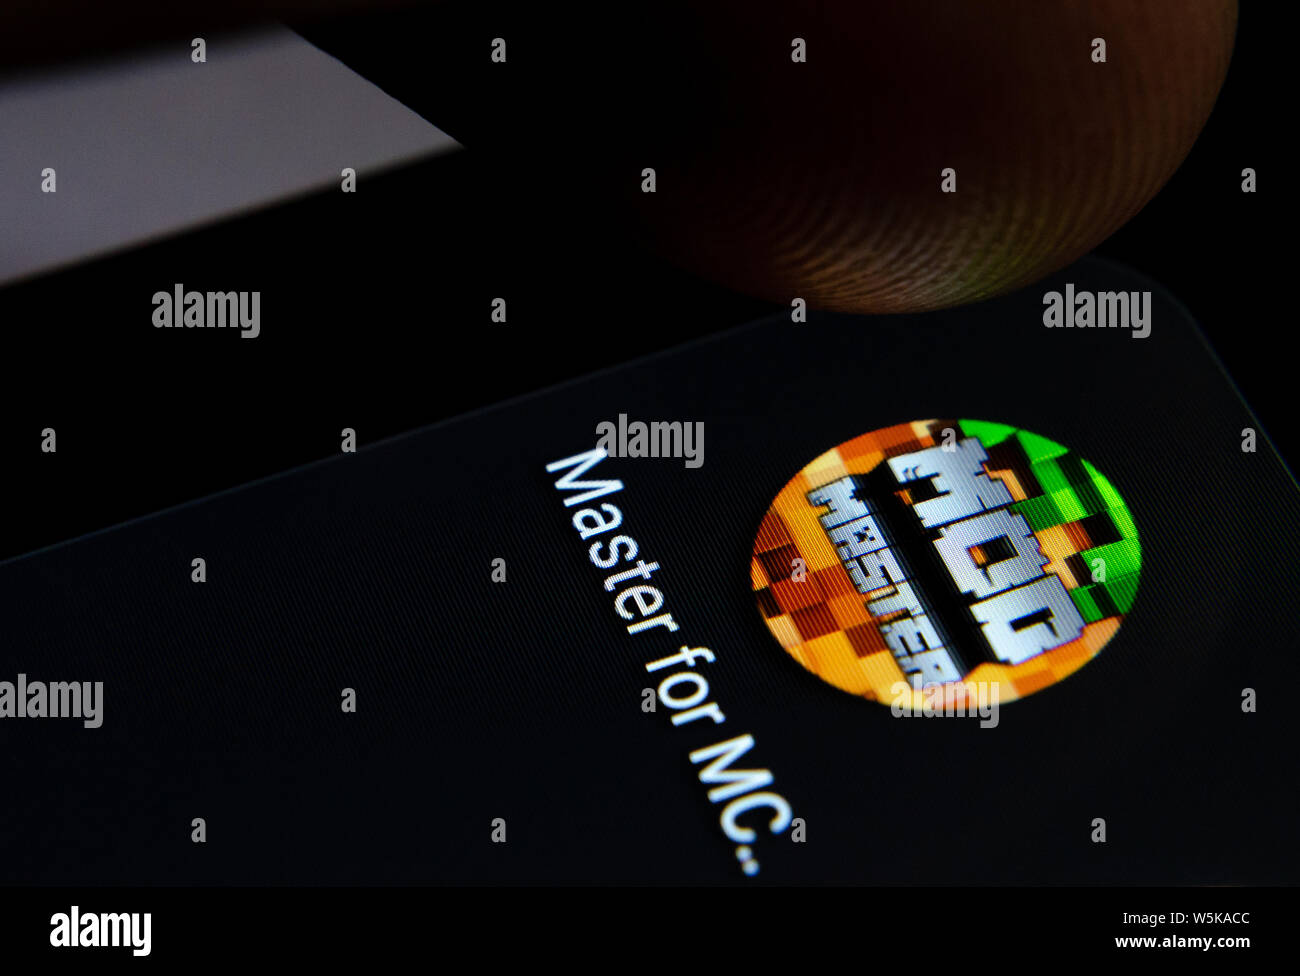 Android Screen Stock Photos & Android Screen Stock Images - Alamy